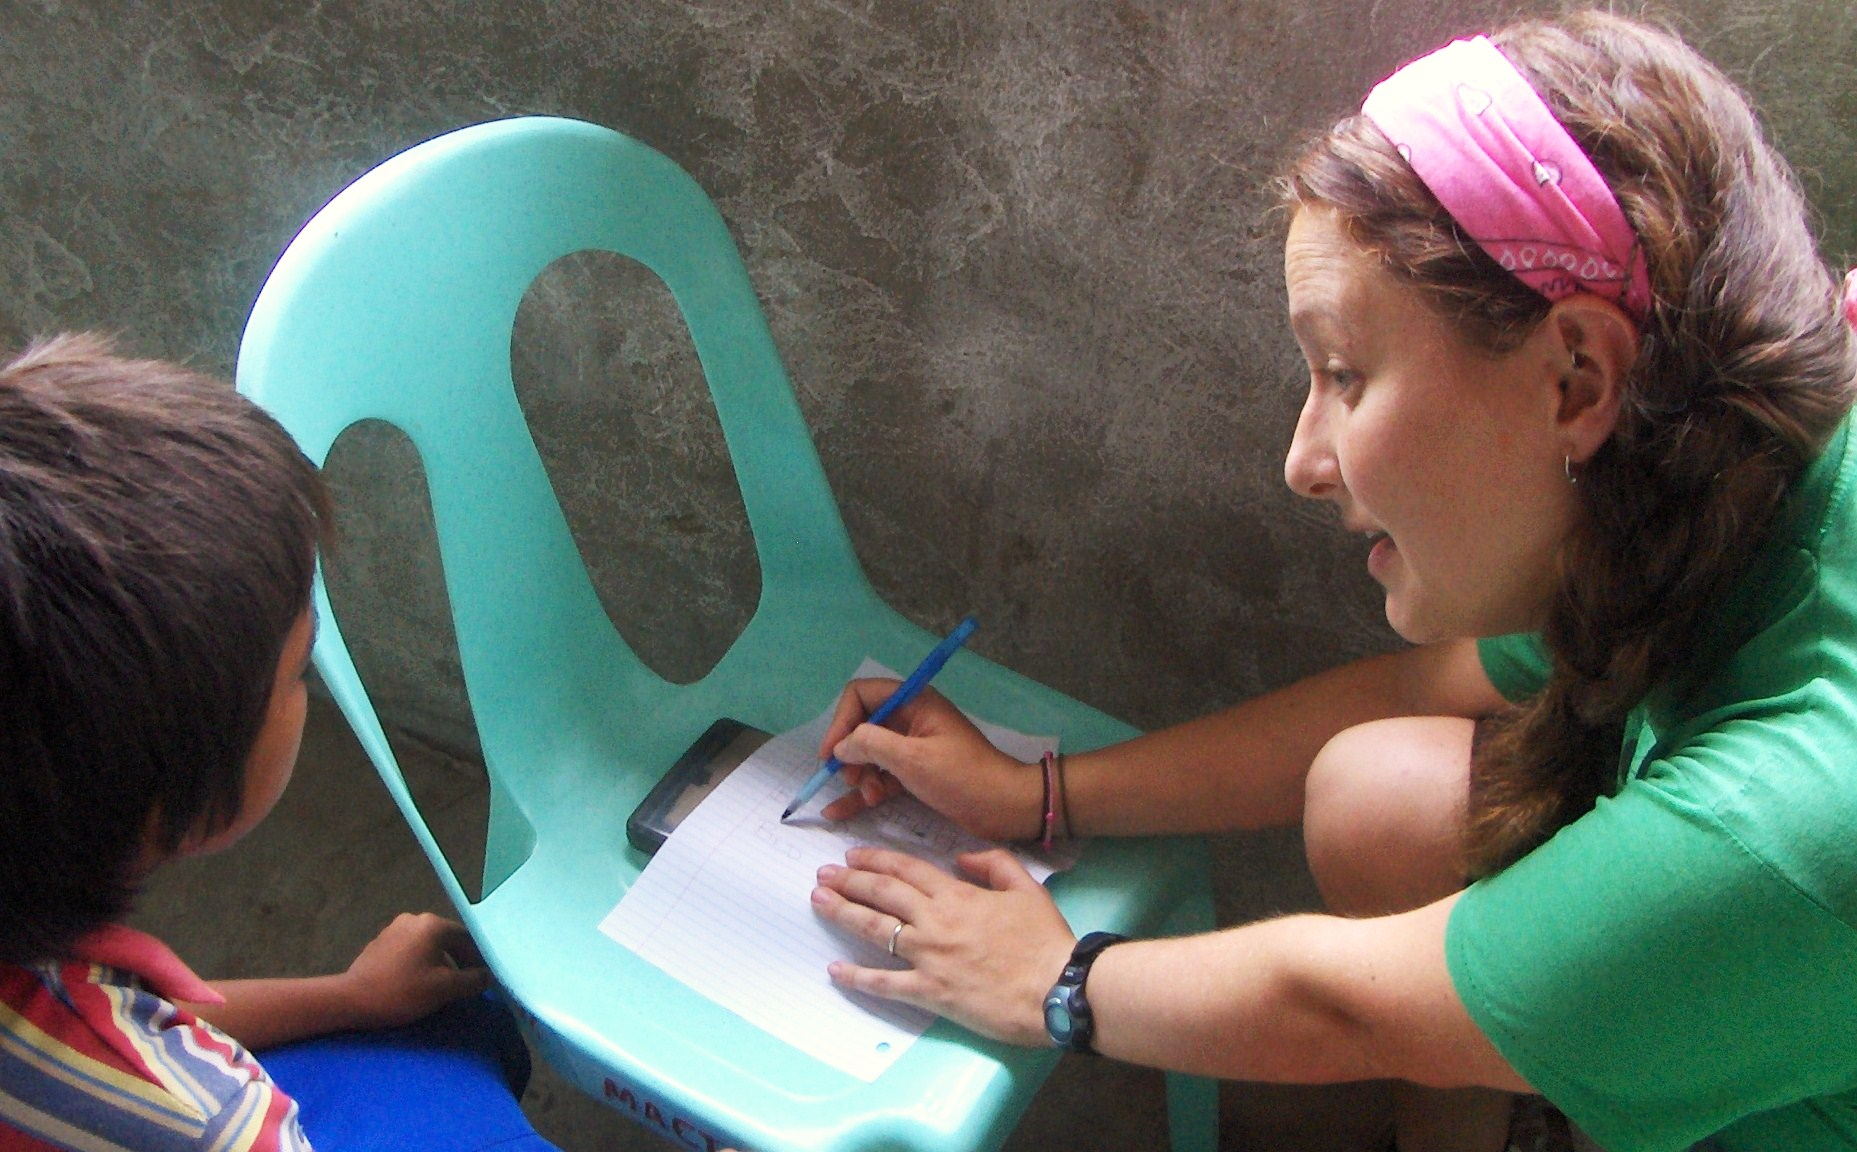 Candace Galford helping a young boy with reading in the Lapu Lapu City dumpsite. The boy's parents work at the dumpsite, scavenging through trash to recycle for income--sadly, a livelihood for many people in the Philippines.